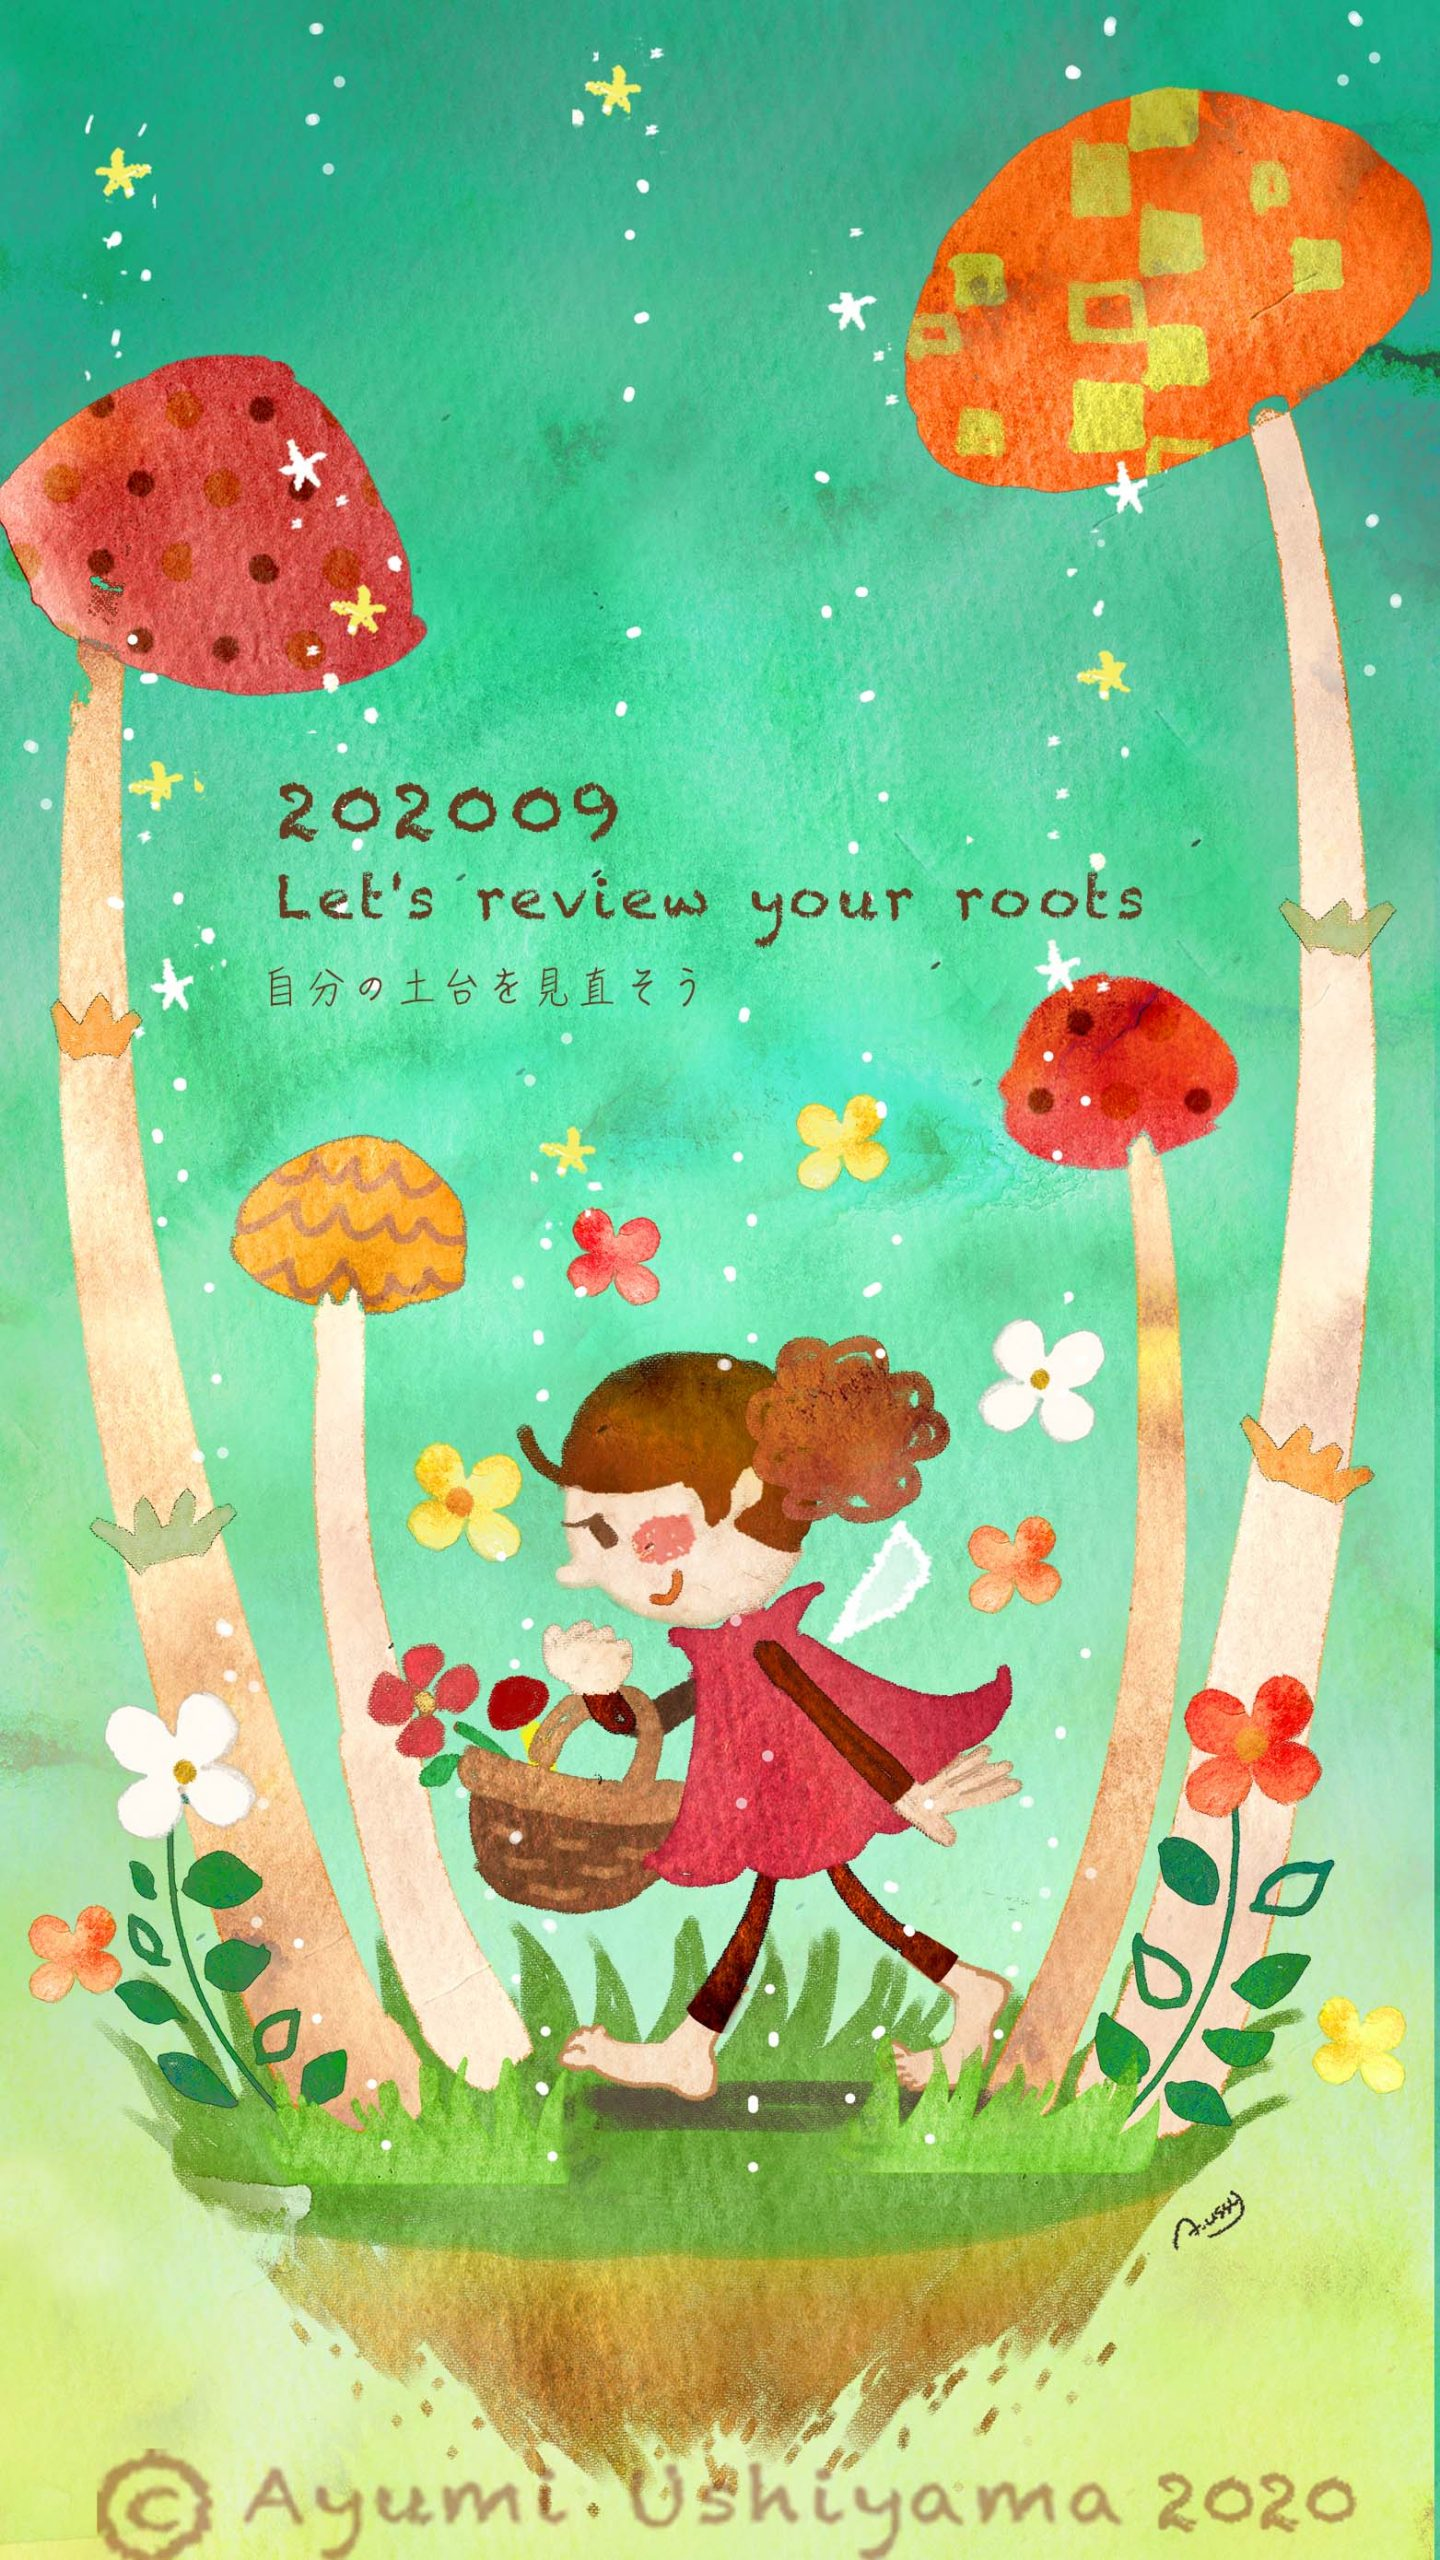 2020.09『Let's review your roots』